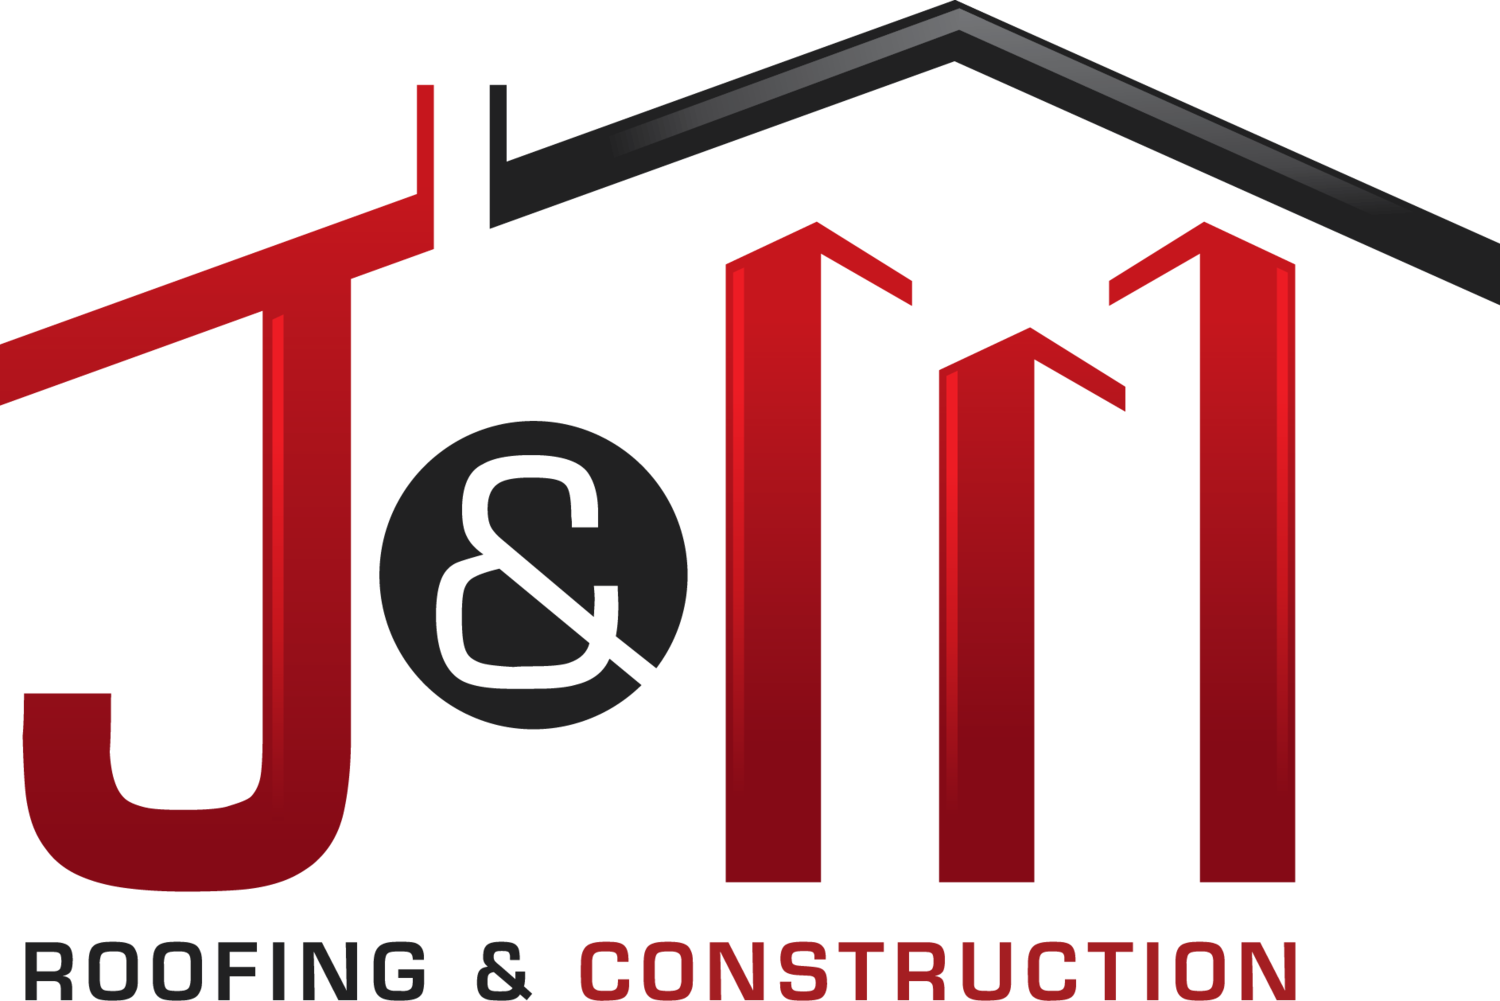 Roofing clipart building contractor. J m construction